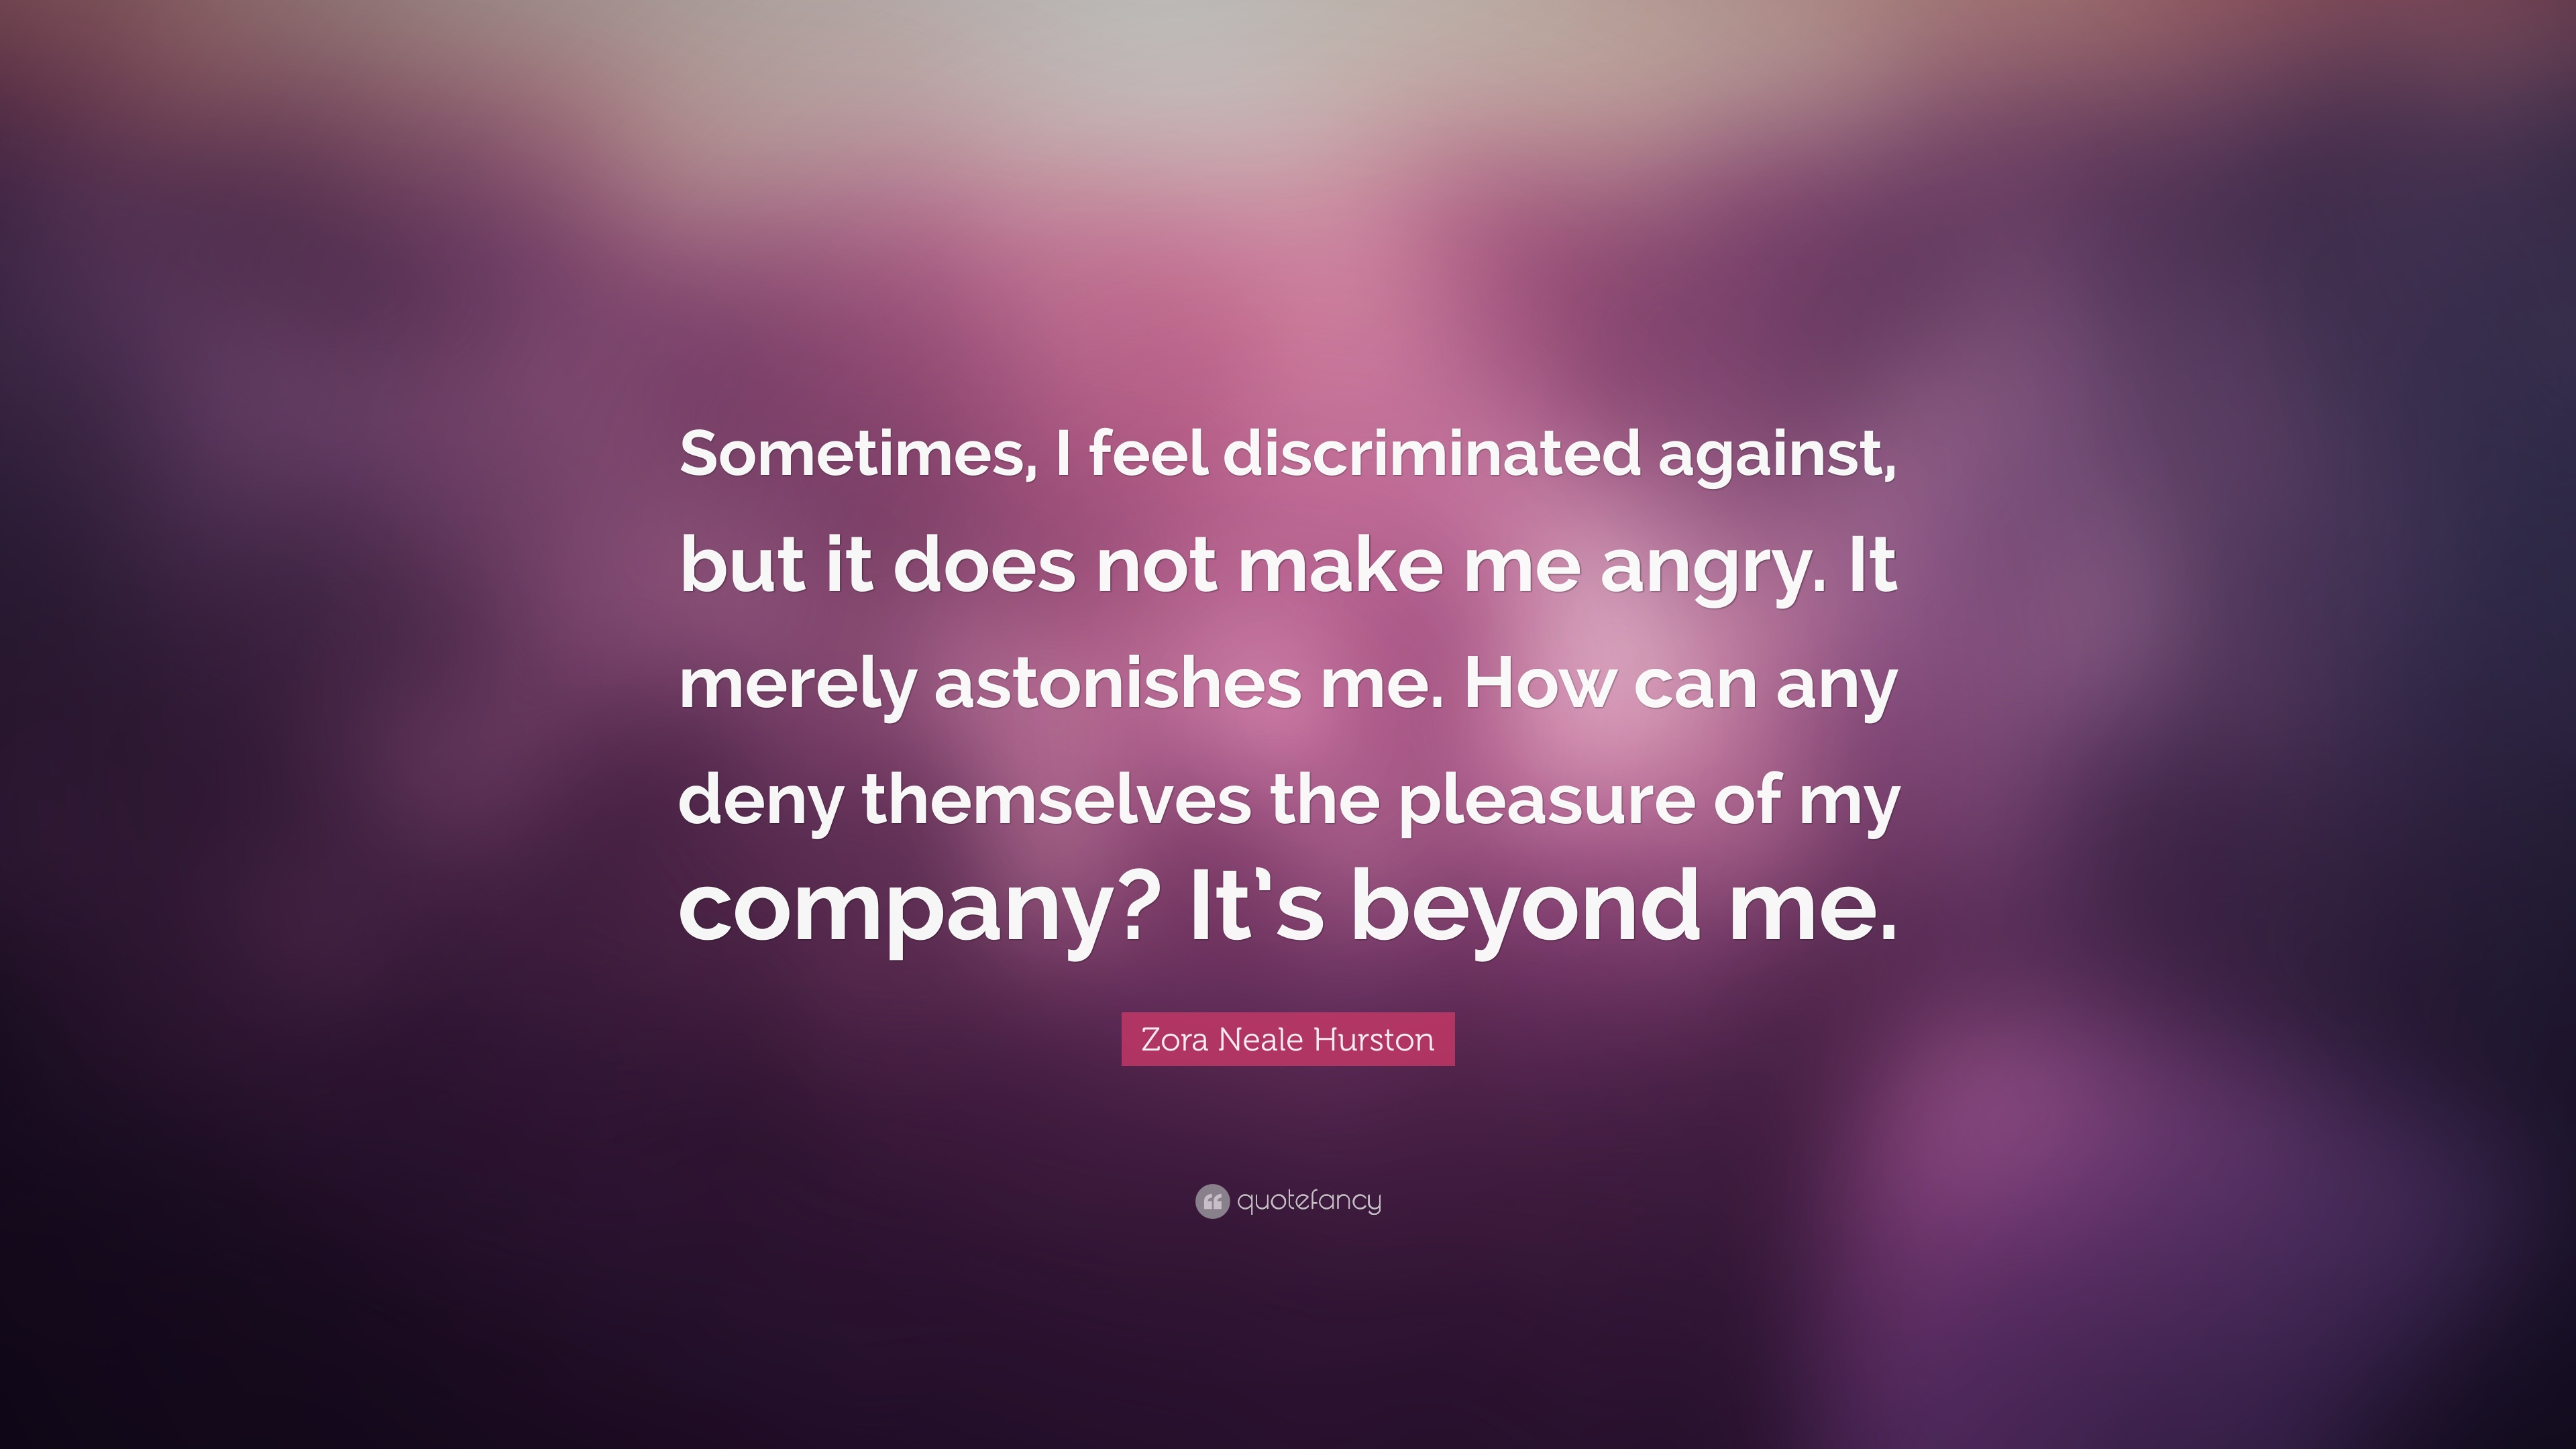 zora neale hurston how it feels Sometimes, i feel discriminated against, but it does not make me angry it merely astonishes me how can any deny themselves the pleasure of my company it's beyond me - zora neale hurston quotes from brainyquotecom.